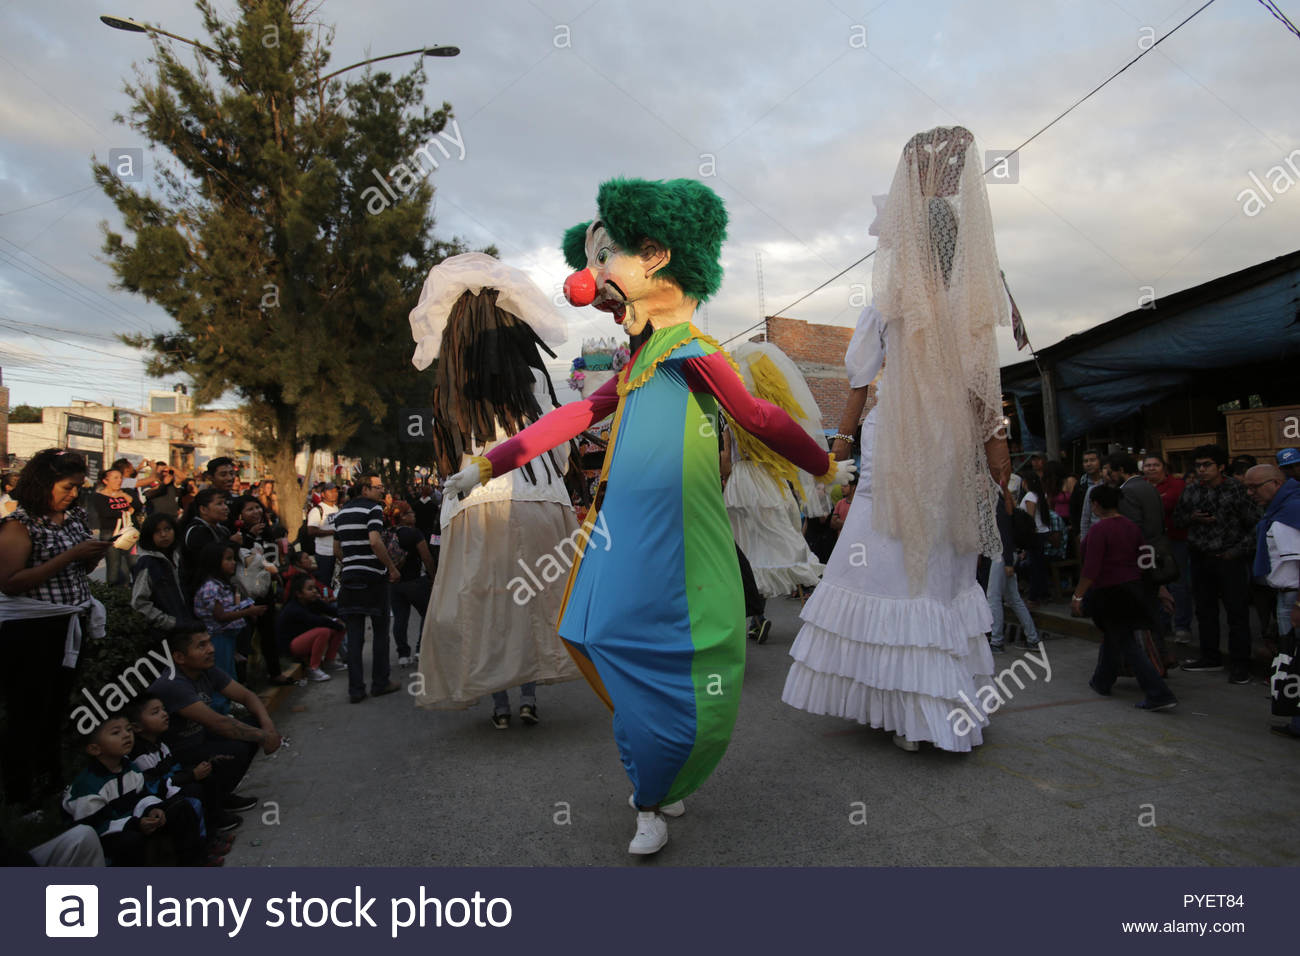 Mojigangas (giant puppets) dancing at an annual parade in mexico - Stock Image